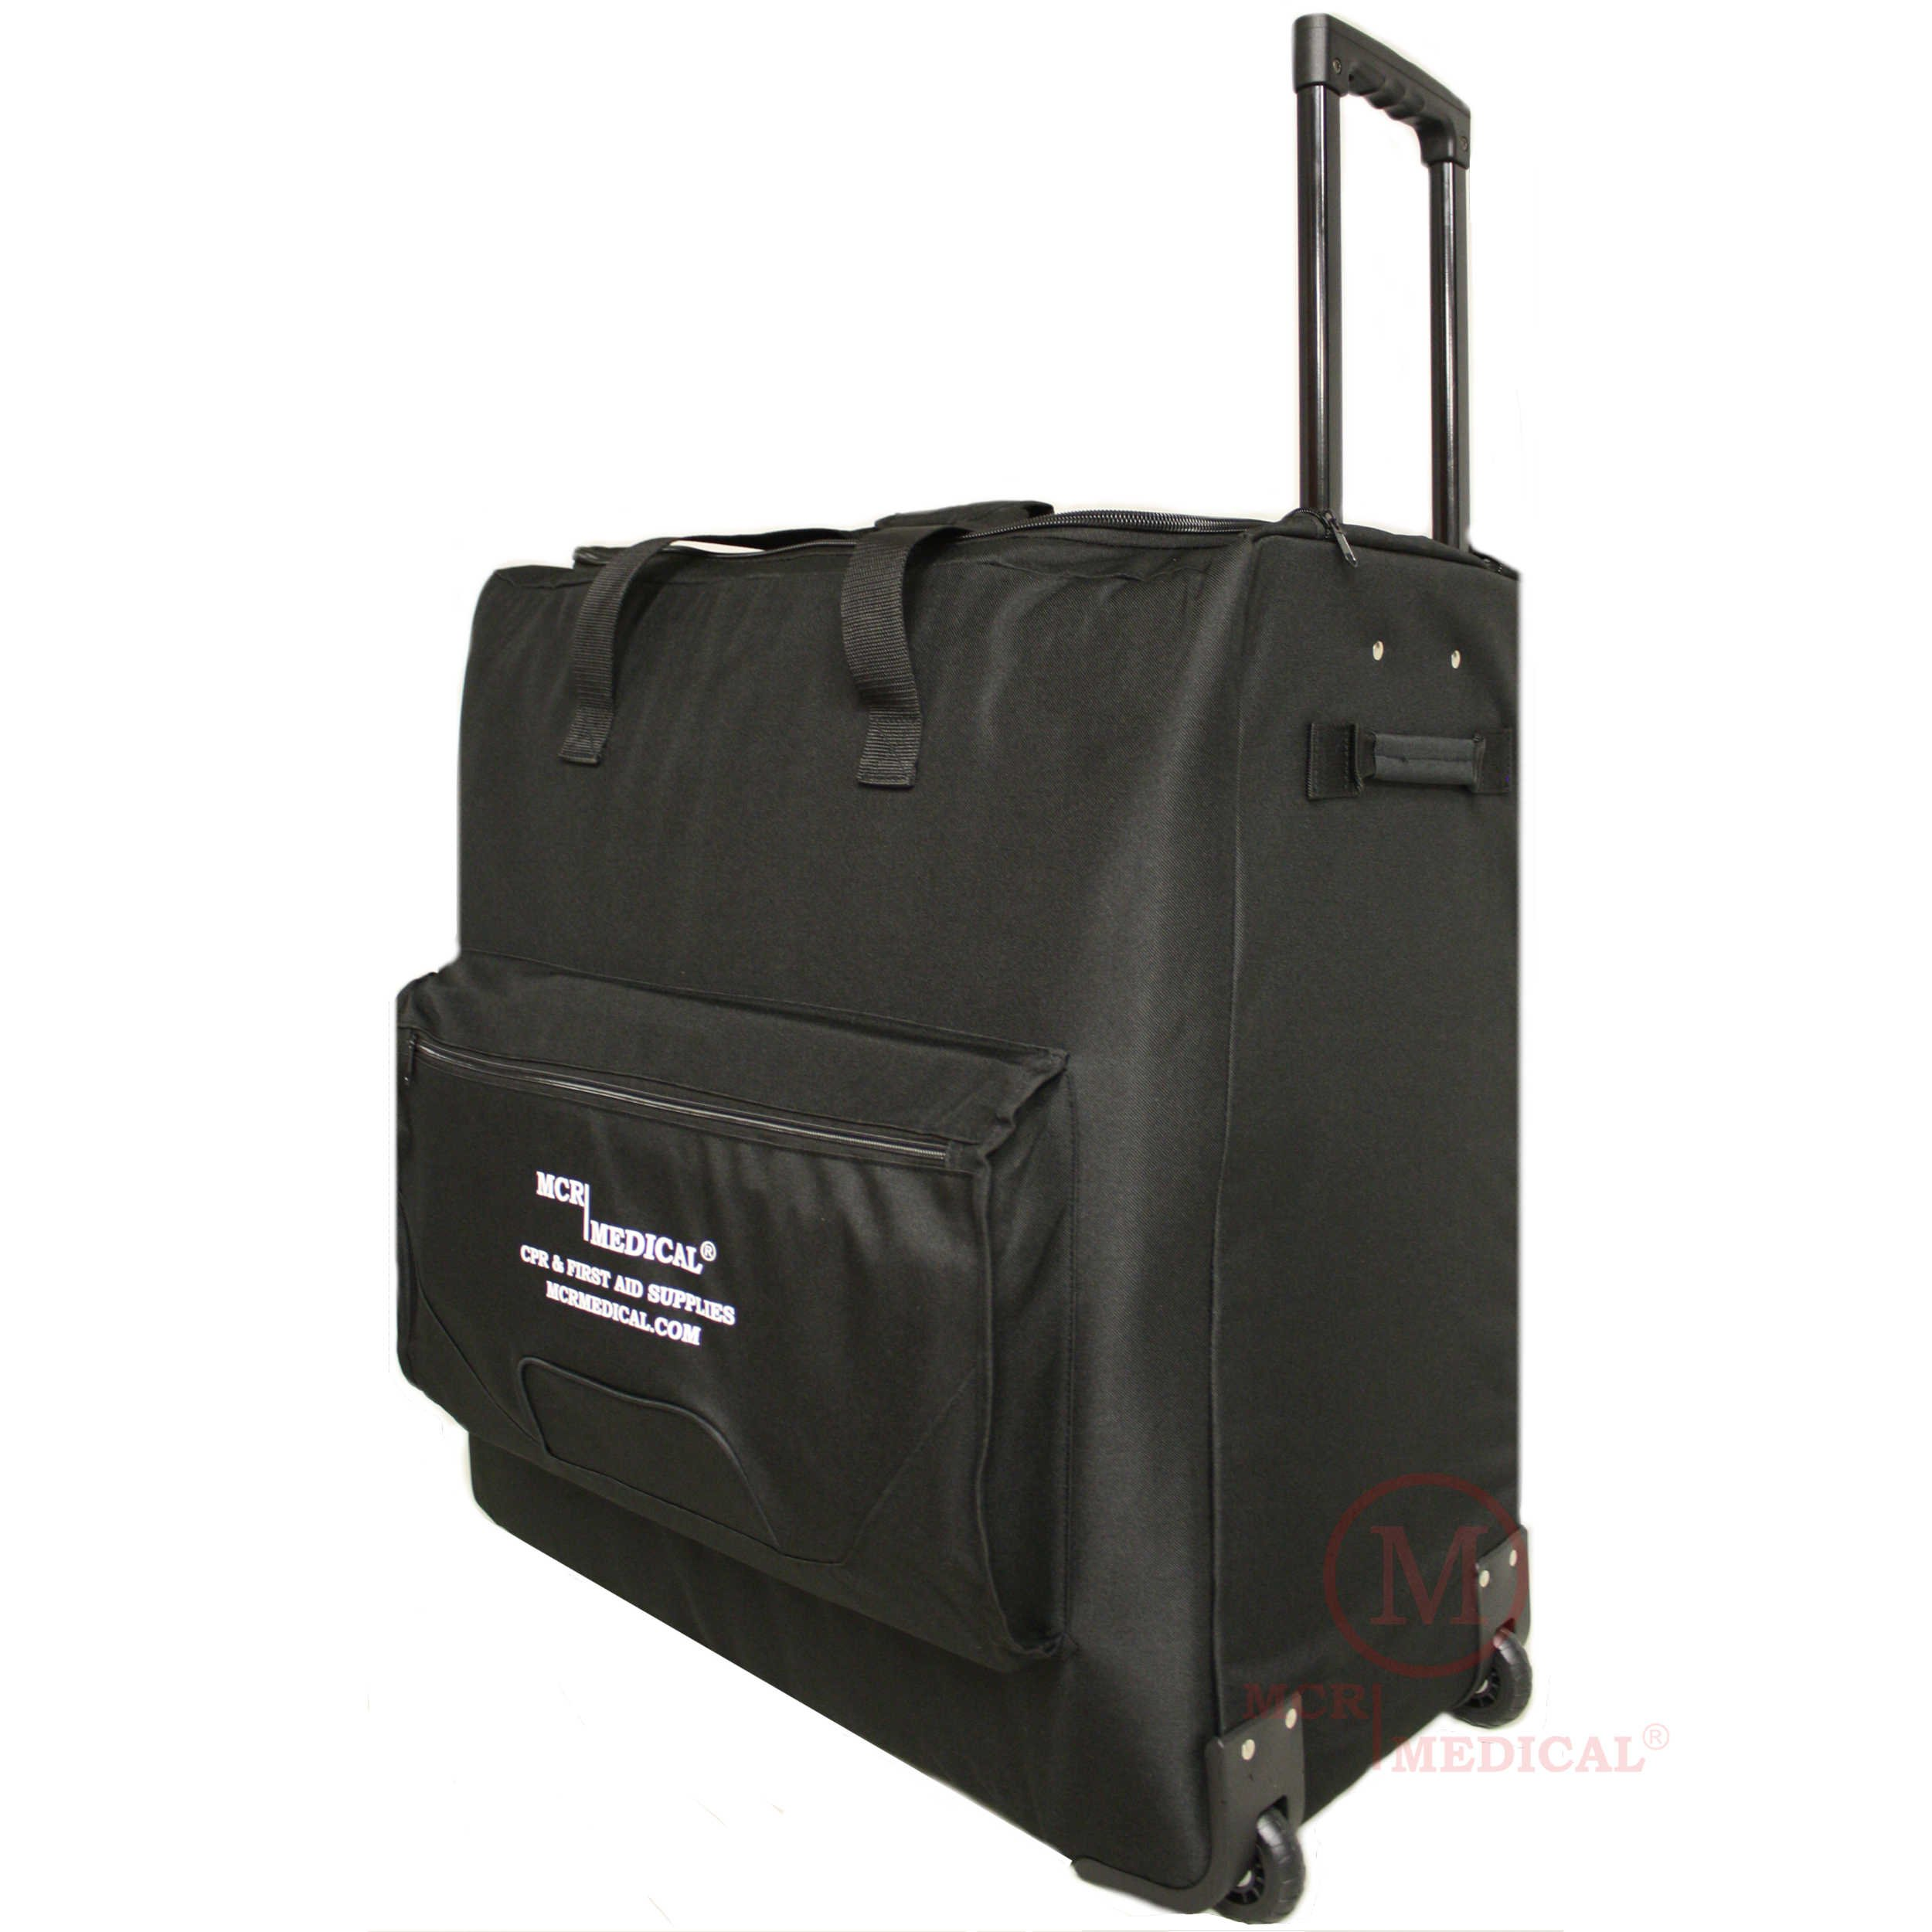 CPR Manikin Carryall Bag with Wheels/Wheeled CPR Training Case, MCR Medical